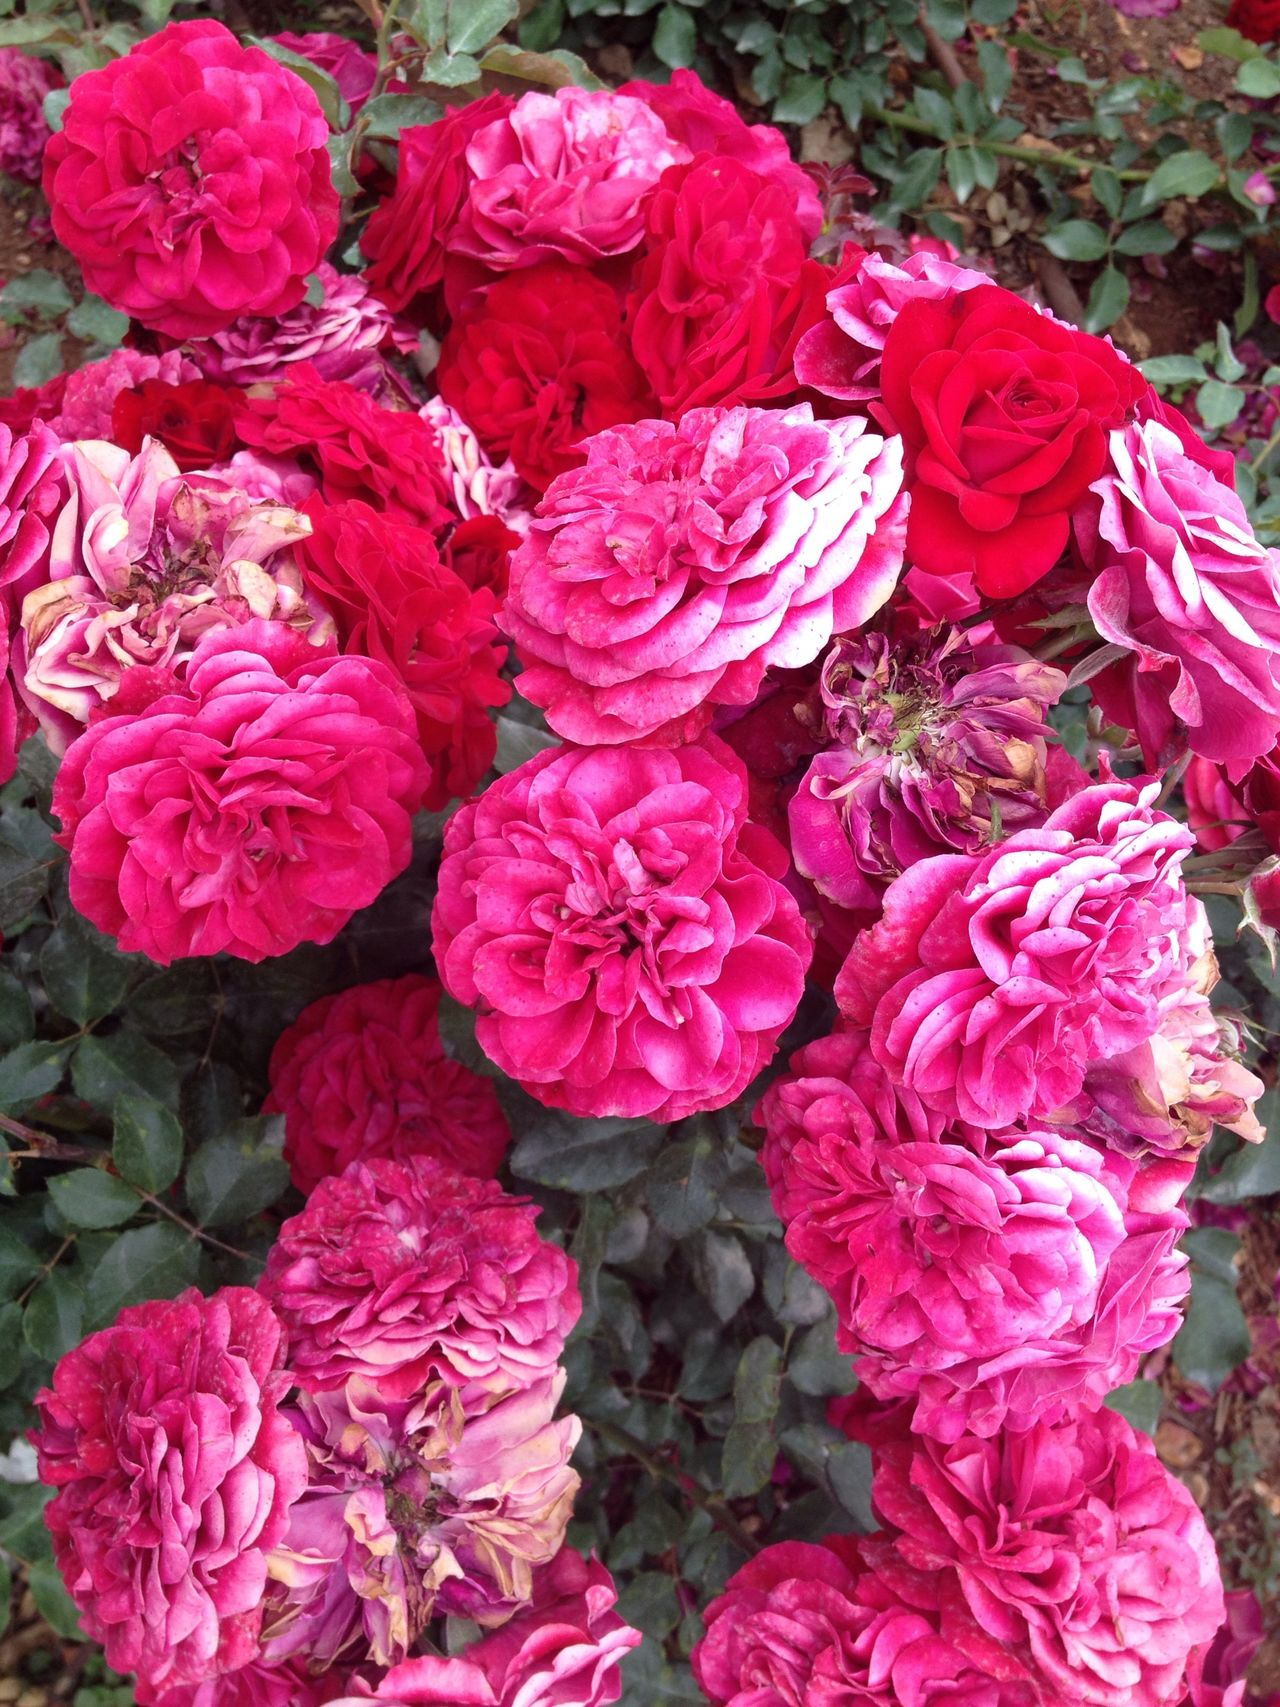 Beauty In Nature Roses Growth No People Outdoors